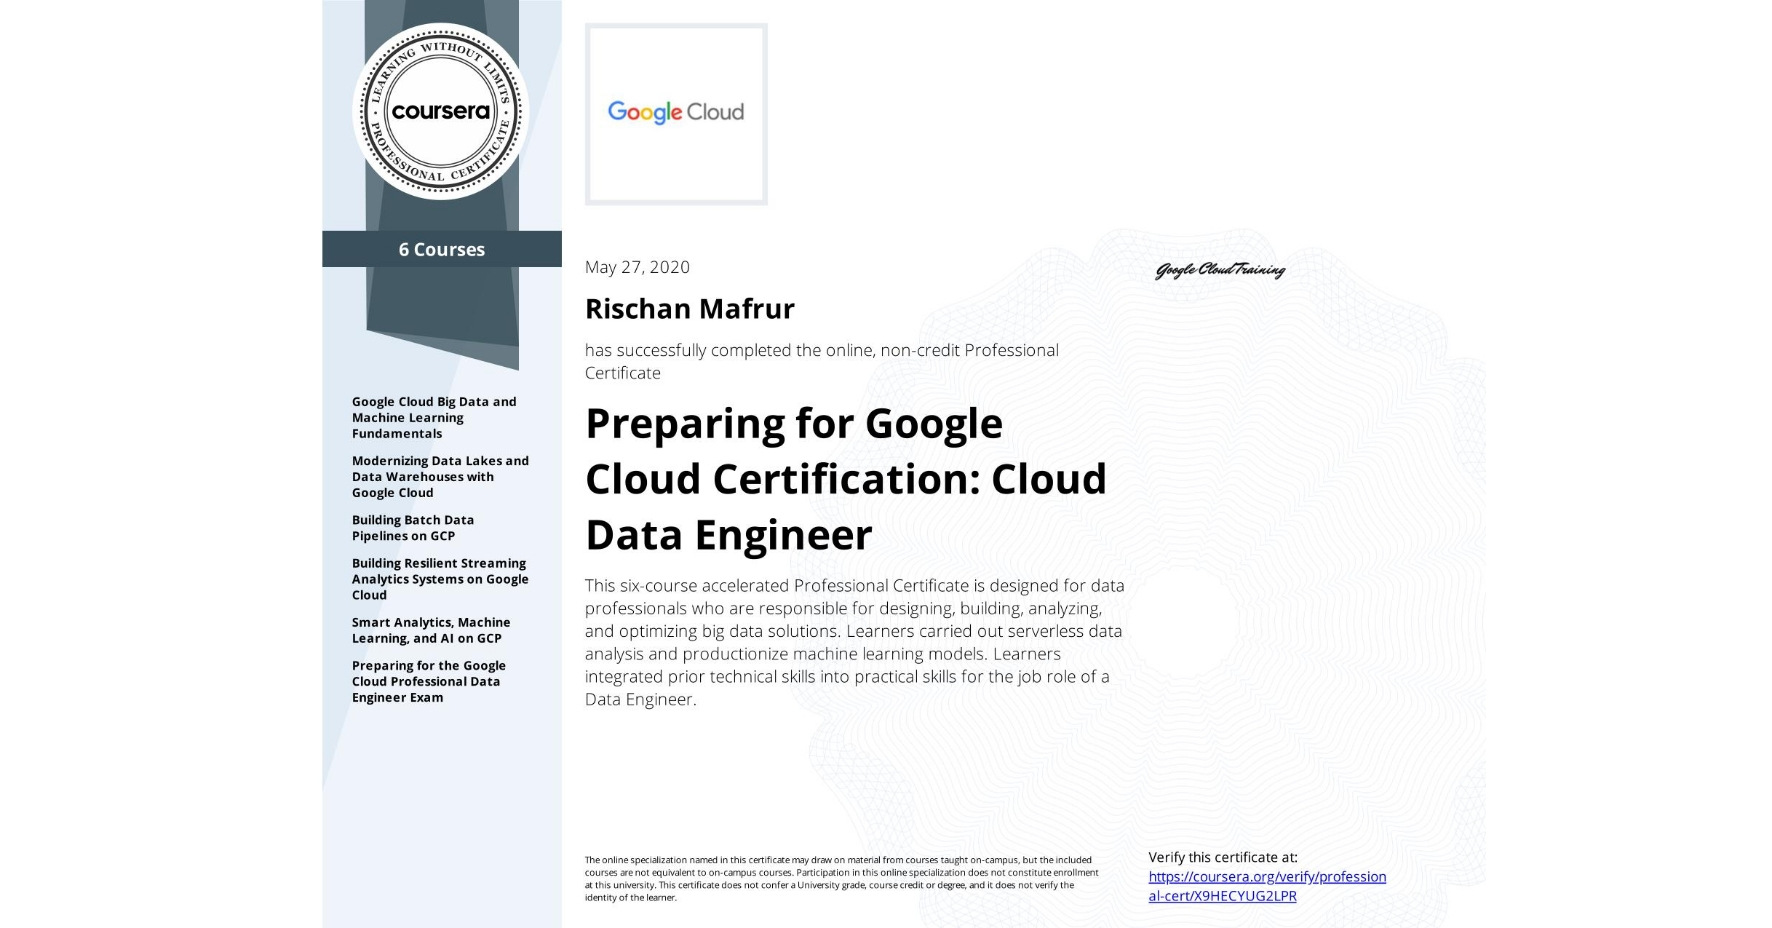 View certificate for Rischan Mafrur, Data Engineering with Google Cloud, offered through Coursera. This six-course accelerated Professional Certificate is designed for data professionals who are responsible for designing, building, analyzing, and optimizing big data solutions. Learners carried out serverless data analysis and productionize machine learning models.  Learners integrated prior technical skills into practical skills for the job role of a Data Engineer.